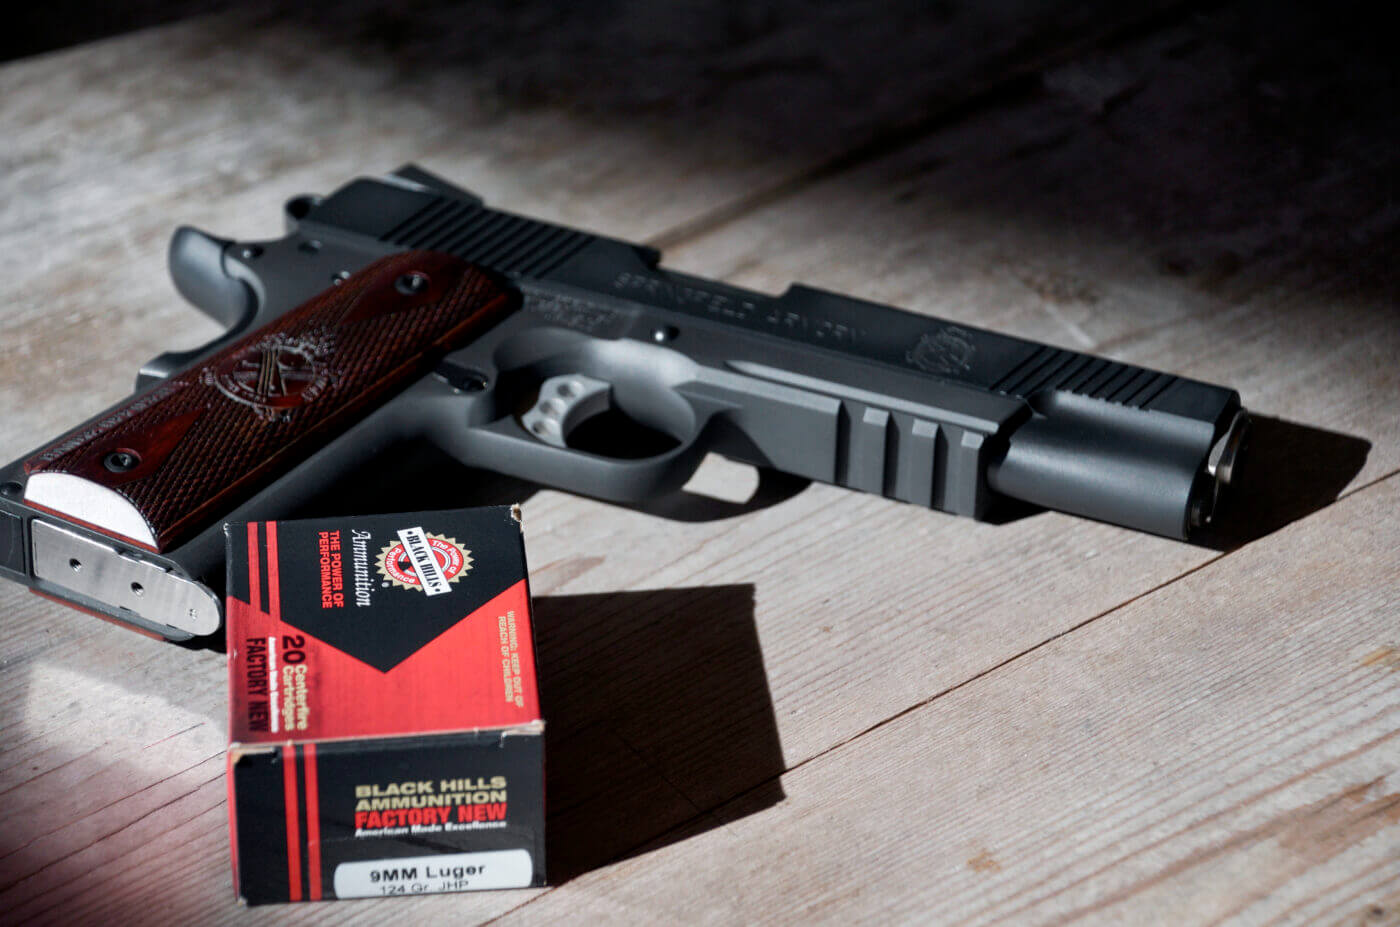 9mm 1911 pistol with ammo